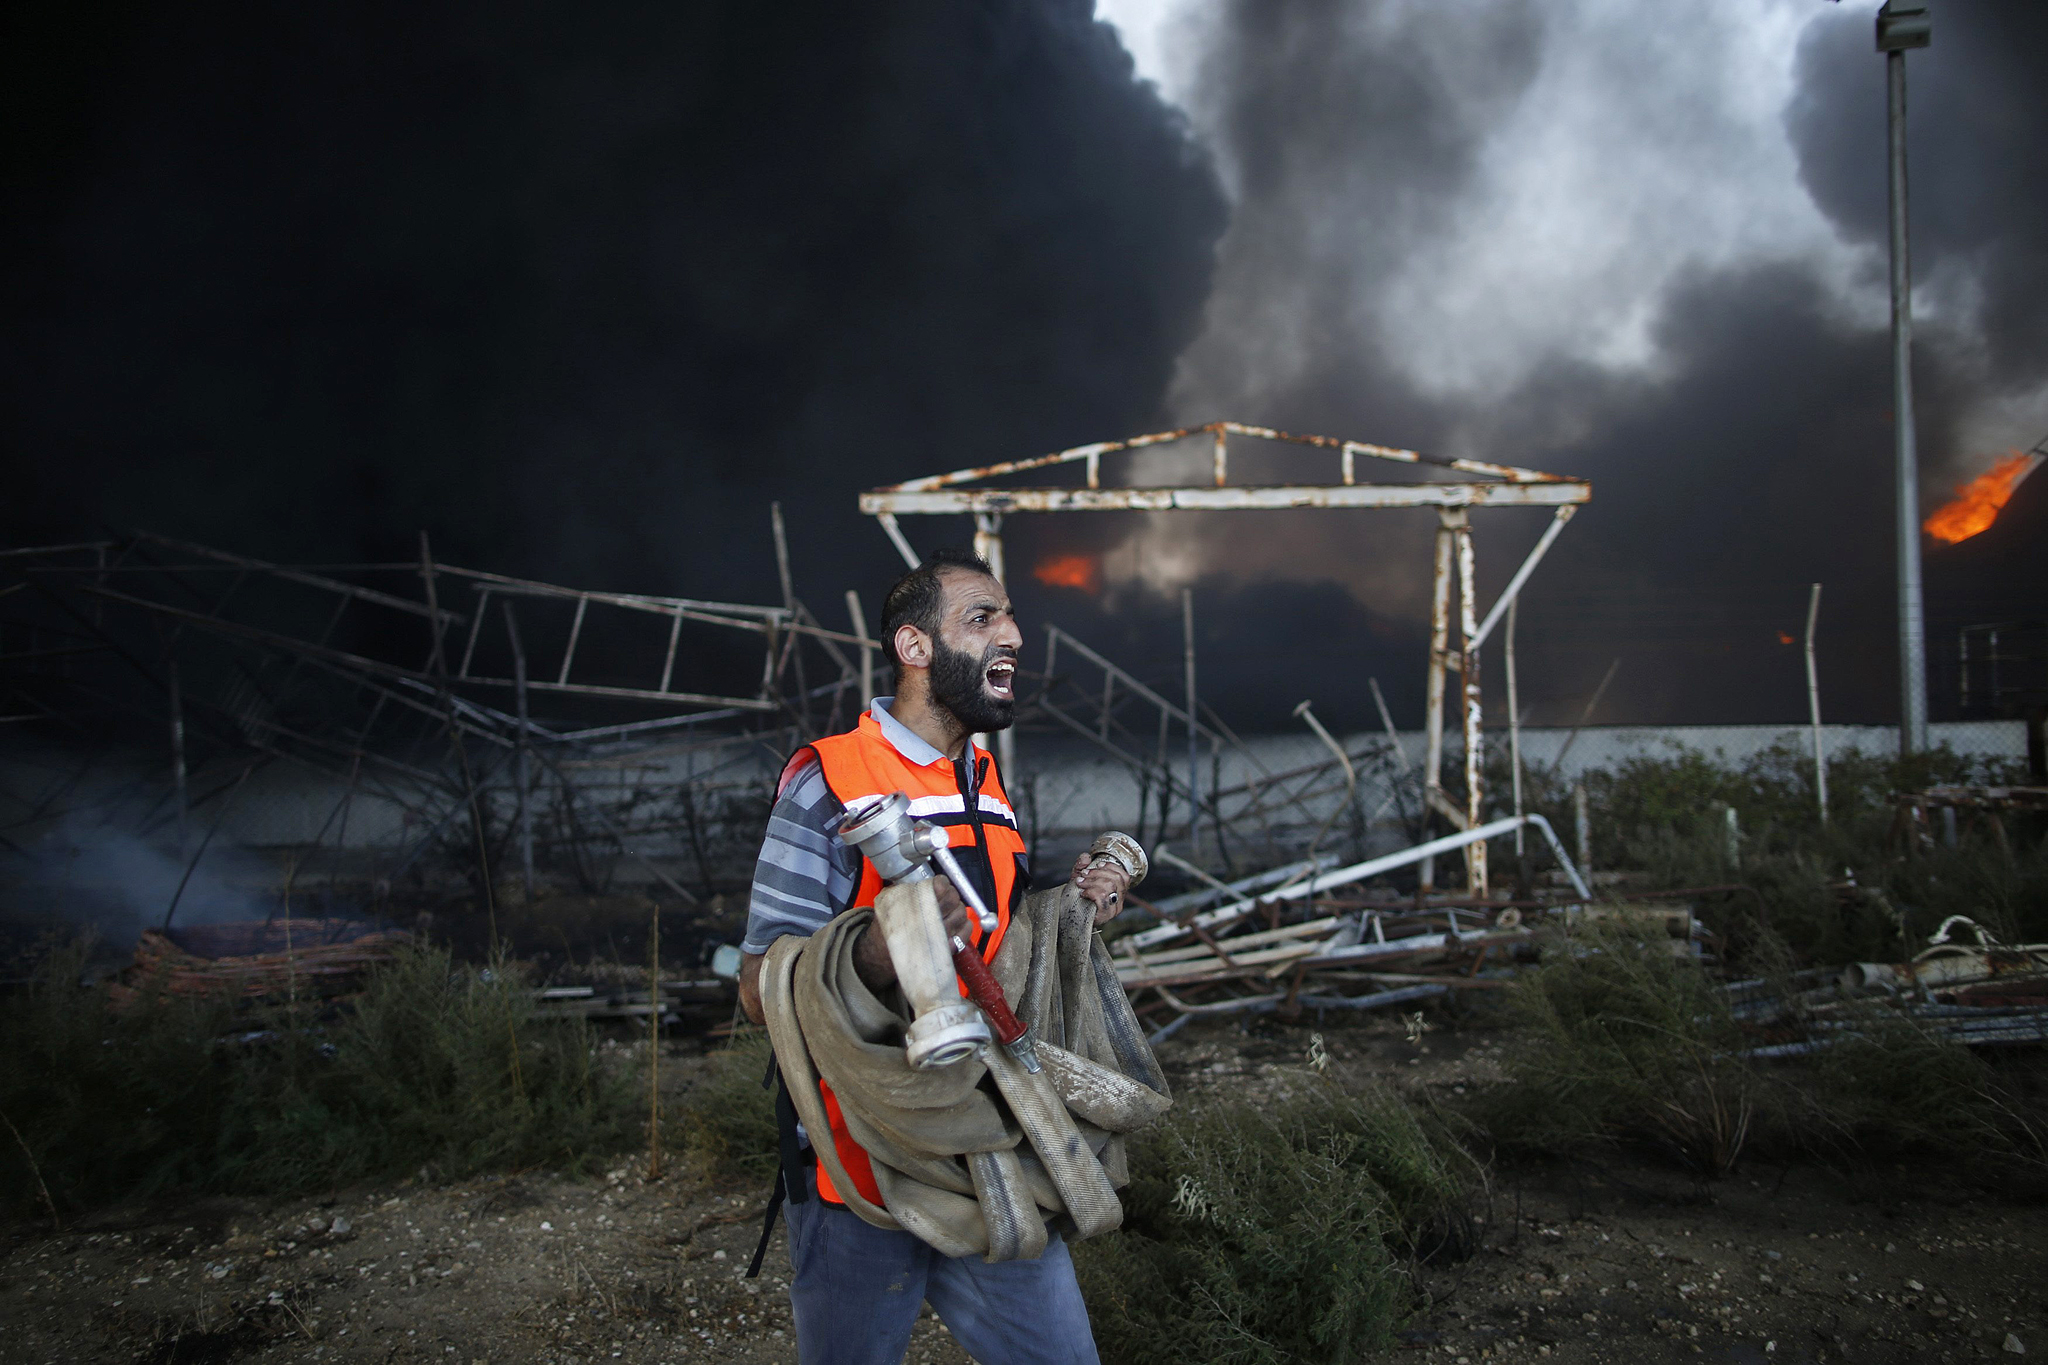 Palestinian firefighter reacts as he tries to put out a fire at Gaza's main power plant in the central Gaza Strip...A Palestinian firefighter reacts as he tries to put out a fire at Gaza's main power plant, which witnesses said was hit in Israeli shelling, in the central Gaza Strip July 29, 2014.  Israeli tank fire hit the fuel depot of the Gaza Strip's only power plant on Tuesday, witnesses said, cutting electricity to Gaza City and many other parts of the Palestinian enclave of 1.8 million people.An Israeli military spokeswoman had no immediate comment and said she was checking the report. Israel launched its Gaza offensive on July 8, saying its aim was to halt rocket attacks by Hamas and its allies. REUTERS/Mohammed Salem (GAZA - Tags: POLITICS CIVIL UNREST ENERGY TPX IMAGES OF THE DAY)